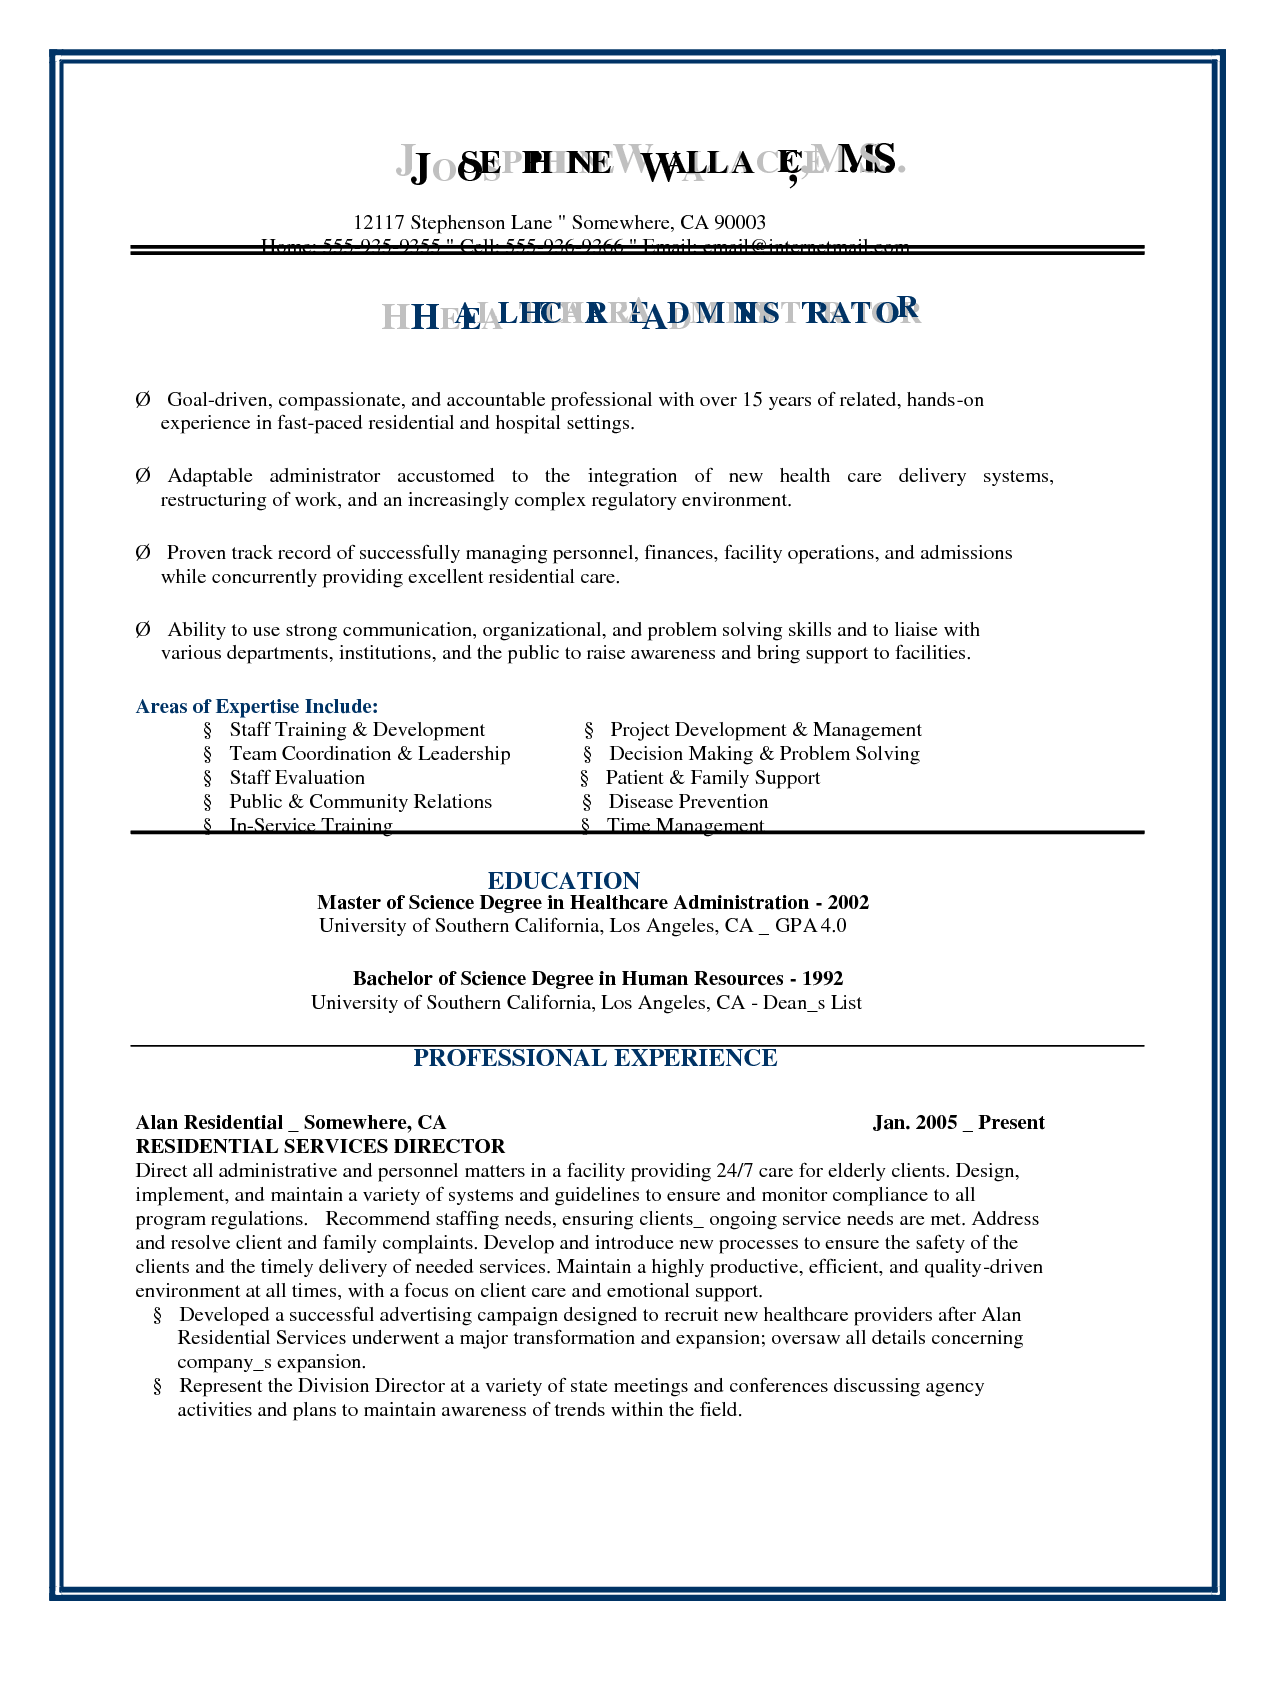 resume example for administration